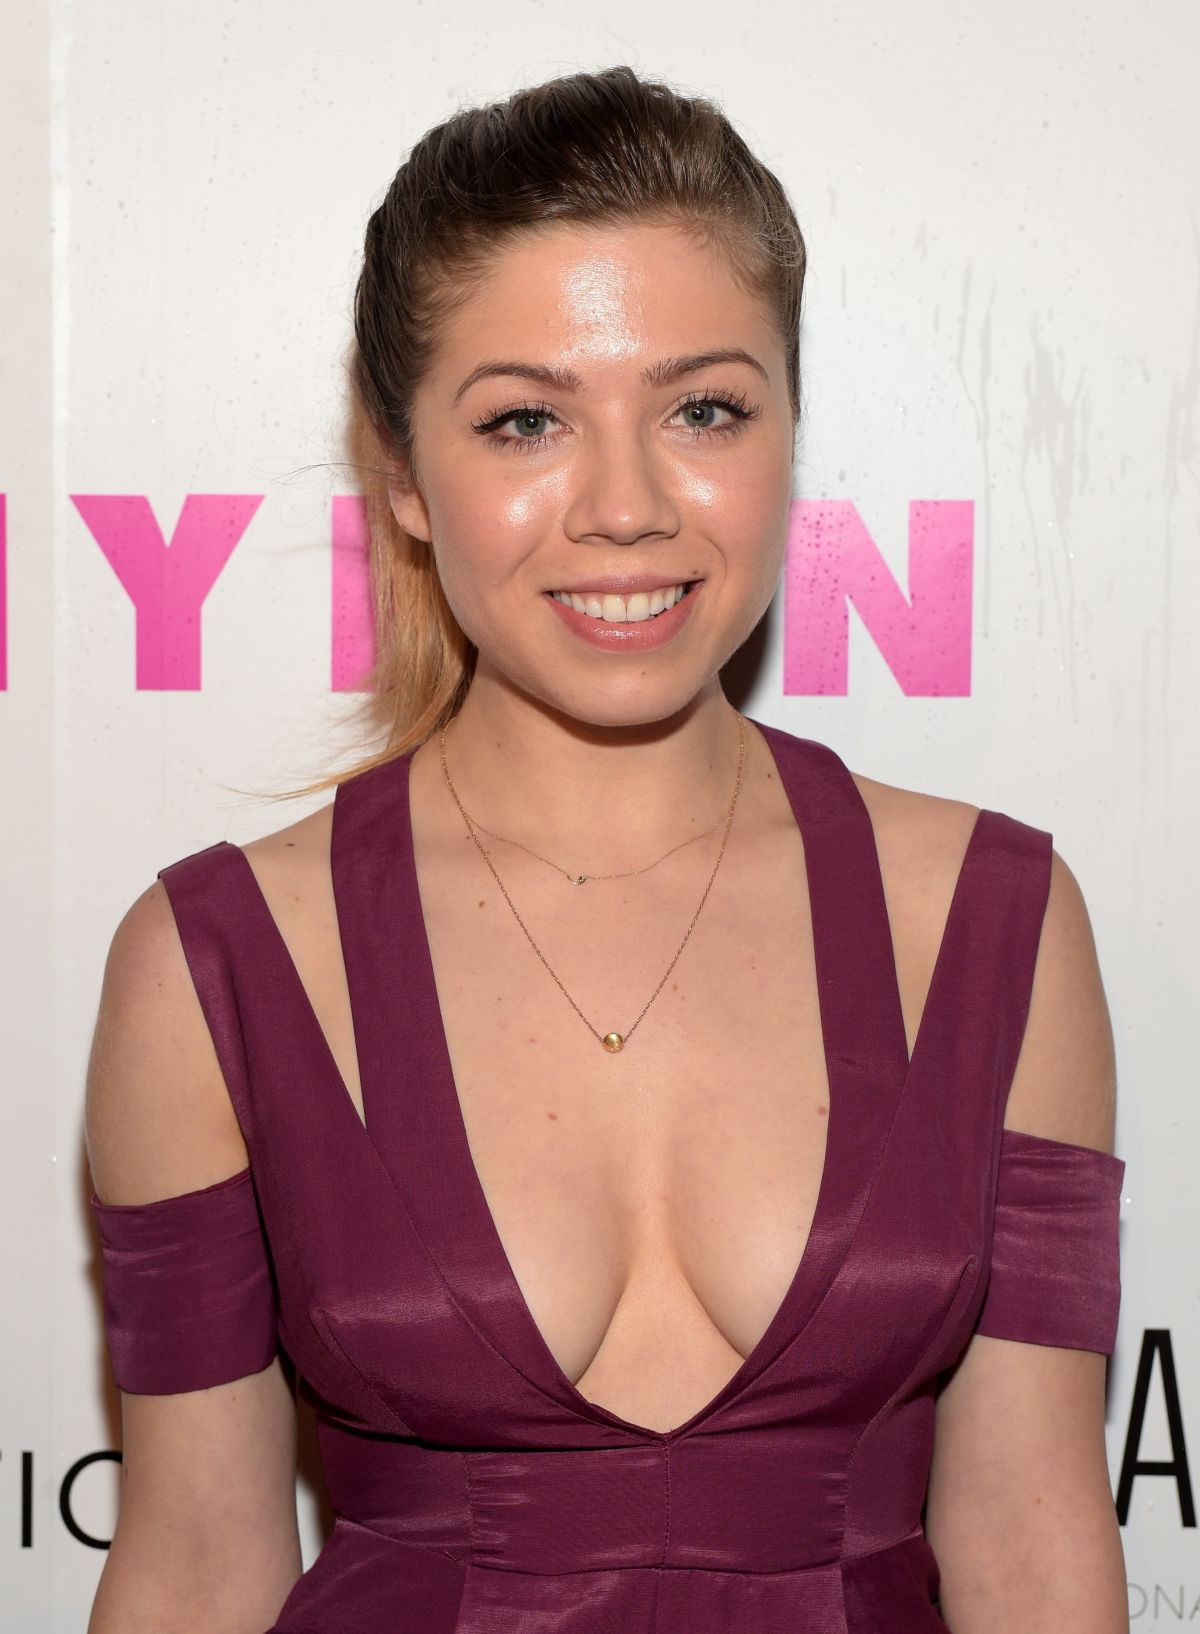 JENNETTE MCCURDY at Nylon Young Hollywood Party in Hollywood